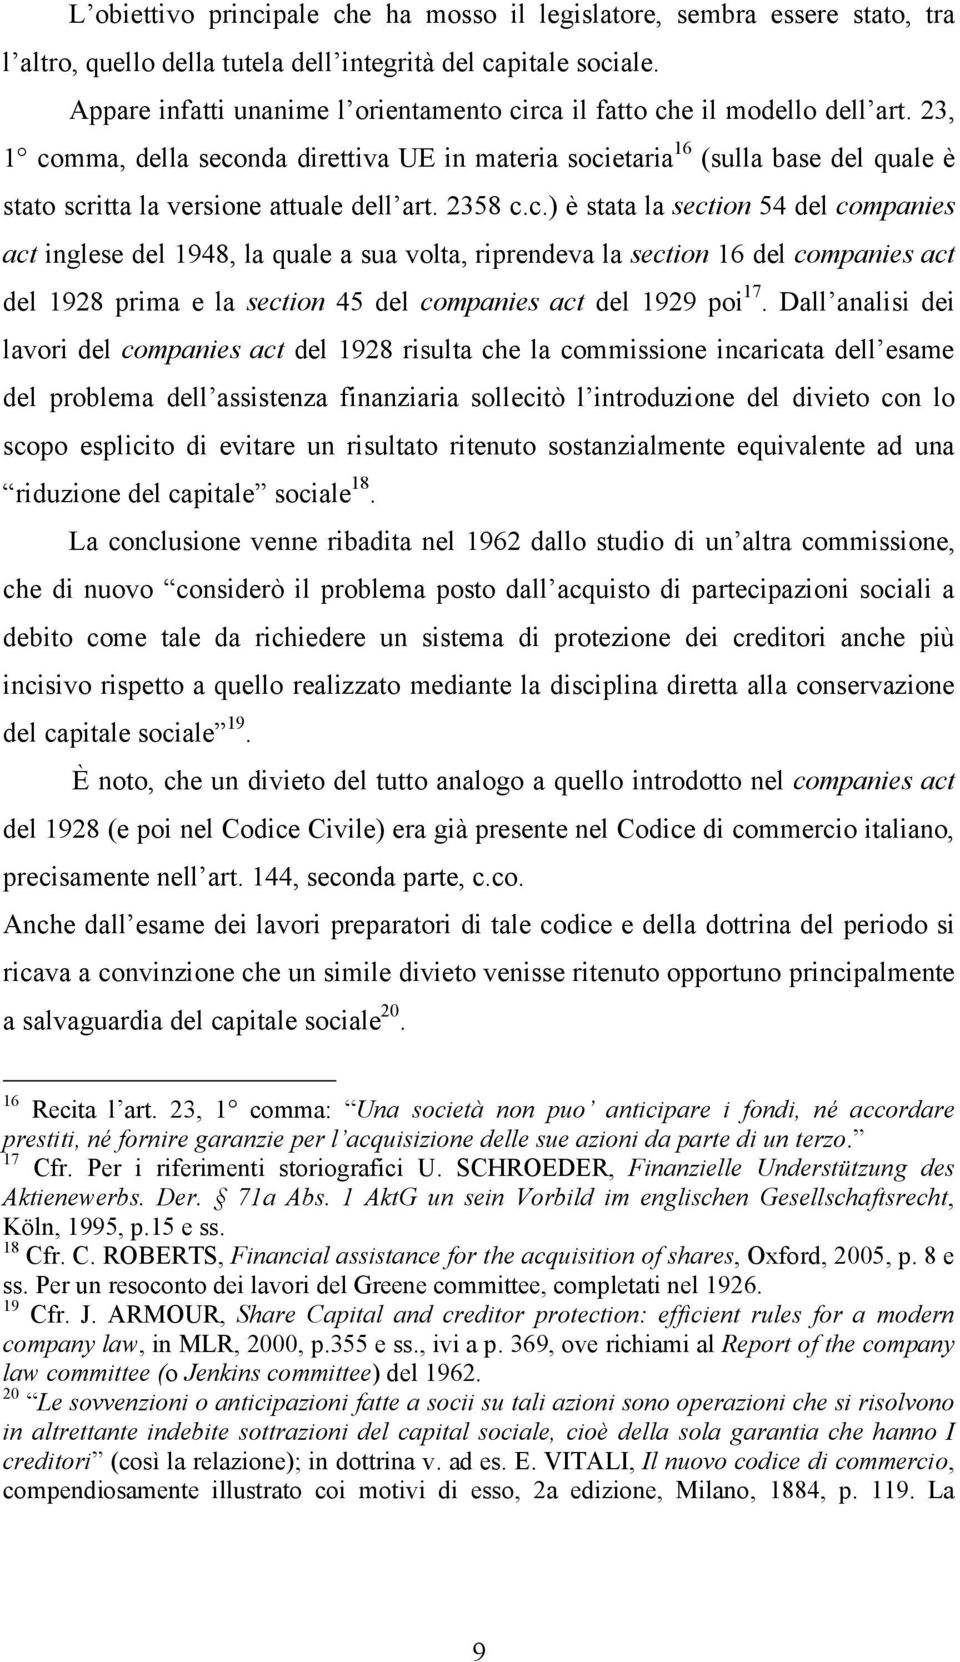 23, 1 comma, della seconda direttiva UE in materia societaria 16 (sulla base del quale è stato scritta la versione attuale dell art. 2358 c.c.) è stata la section 54 del companies act inglese del 1948, la quale a sua volta, riprendeva la section 16 del companies act del 1928 prima e la section 45 del companies act del 1929 poi 17.